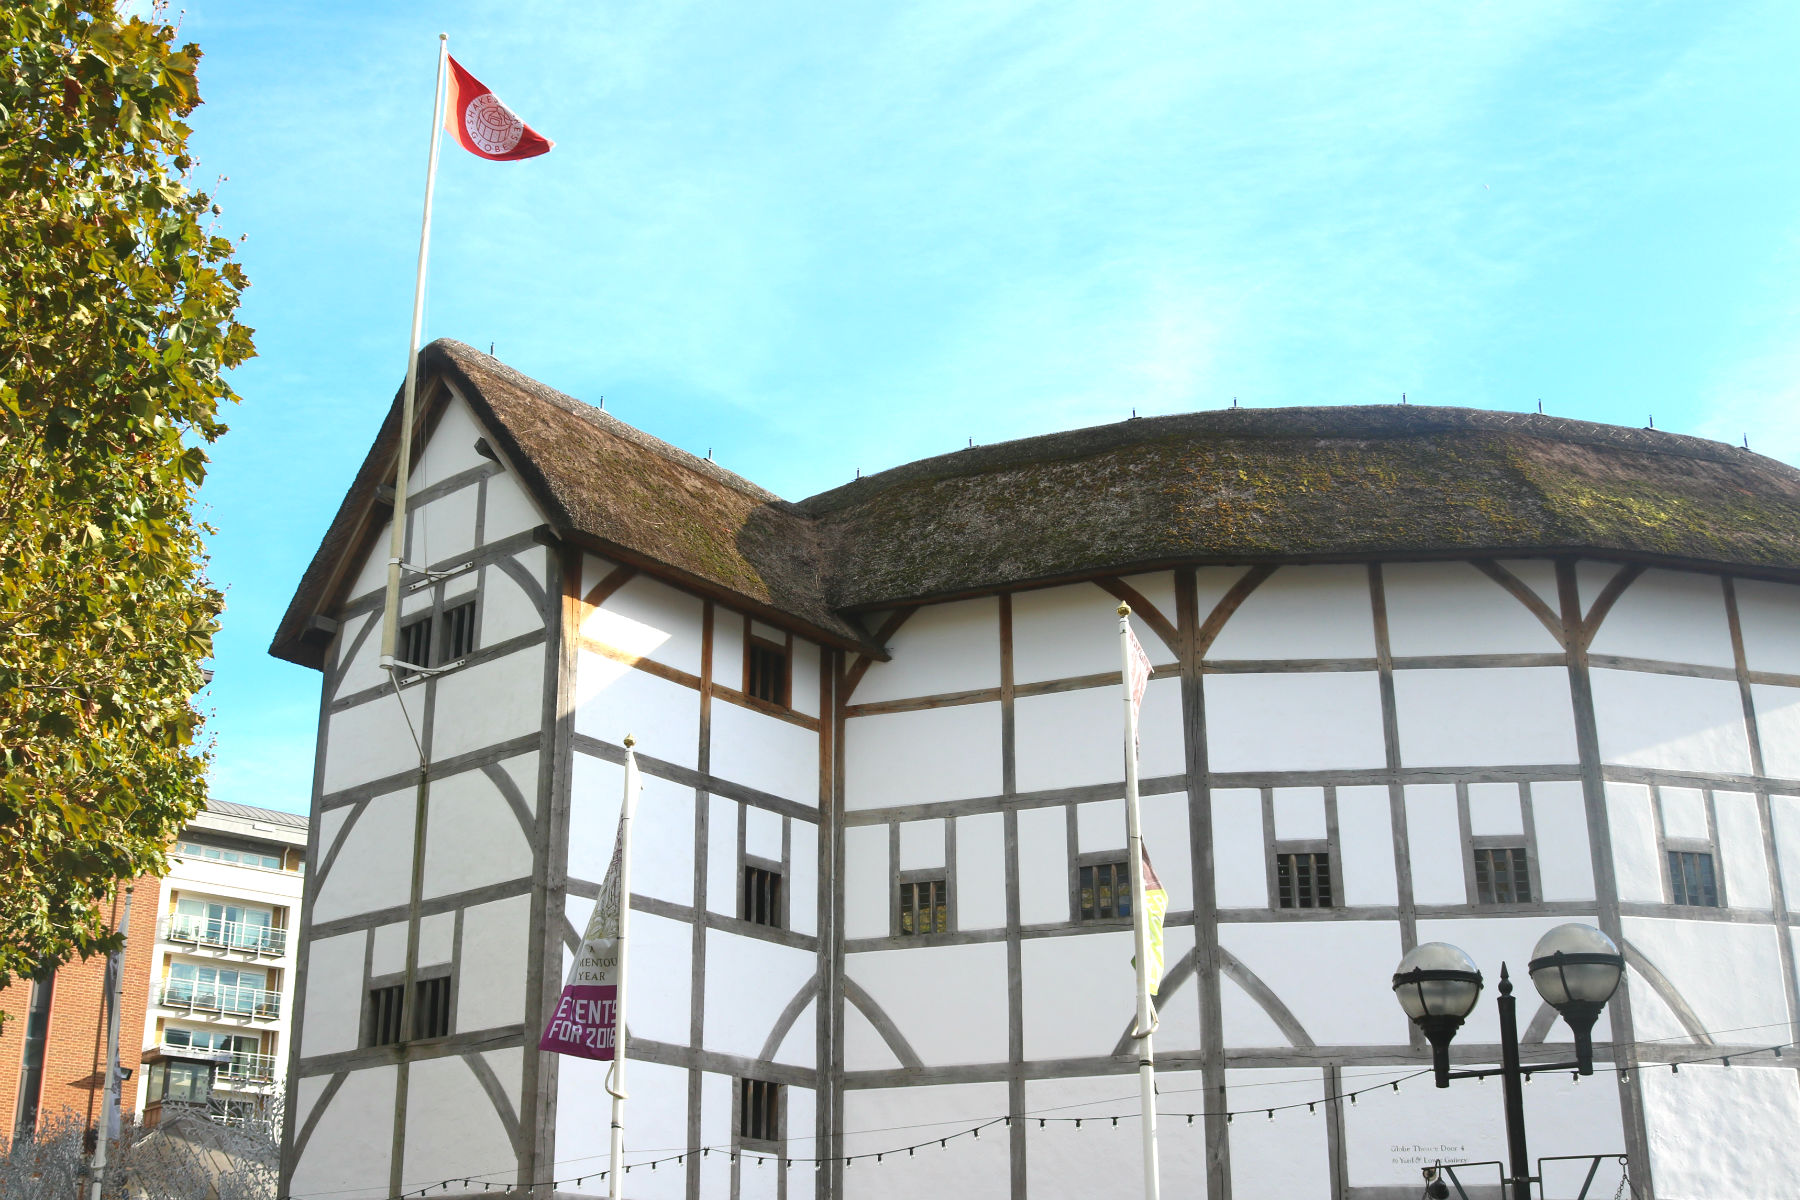 Shakespeare's Globe, London's Bankside